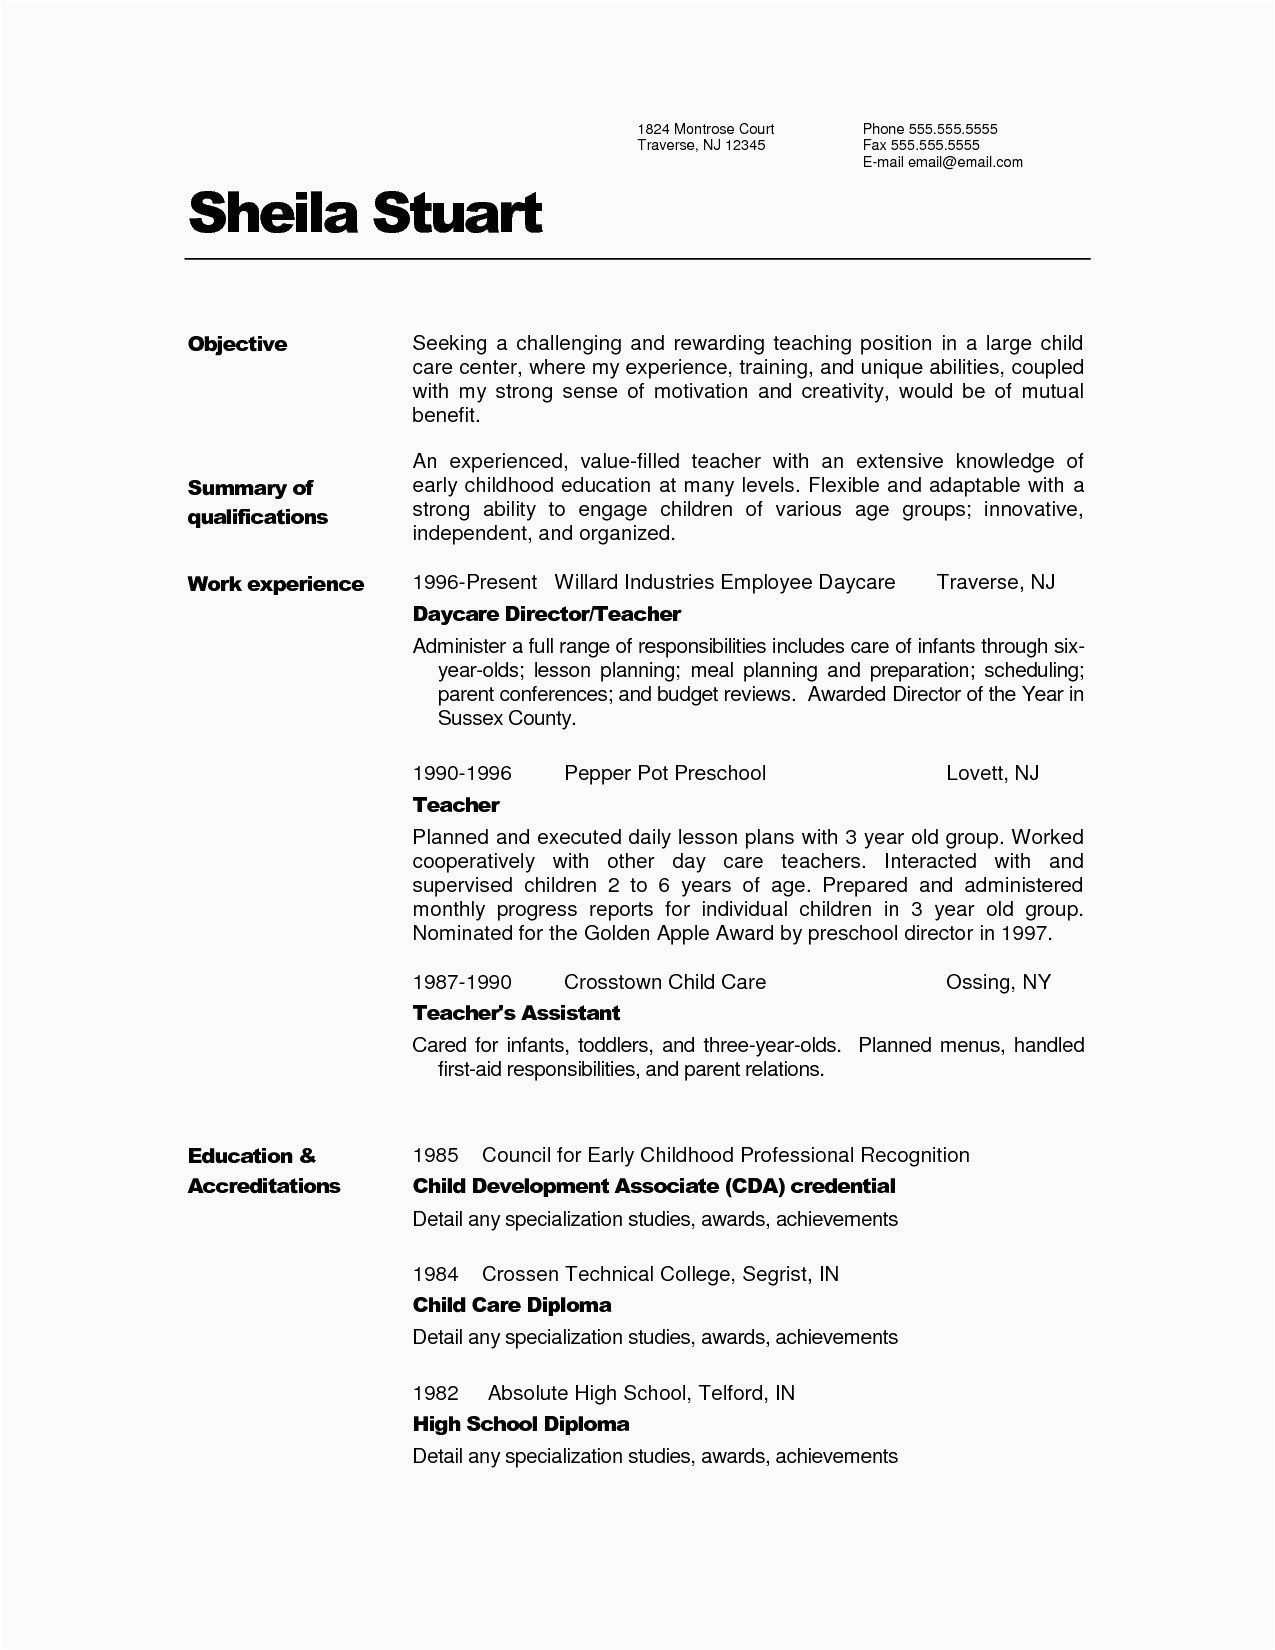 Sample Resume for 50 Year Old Resume Examples for 50 Year Olds Examples Resume